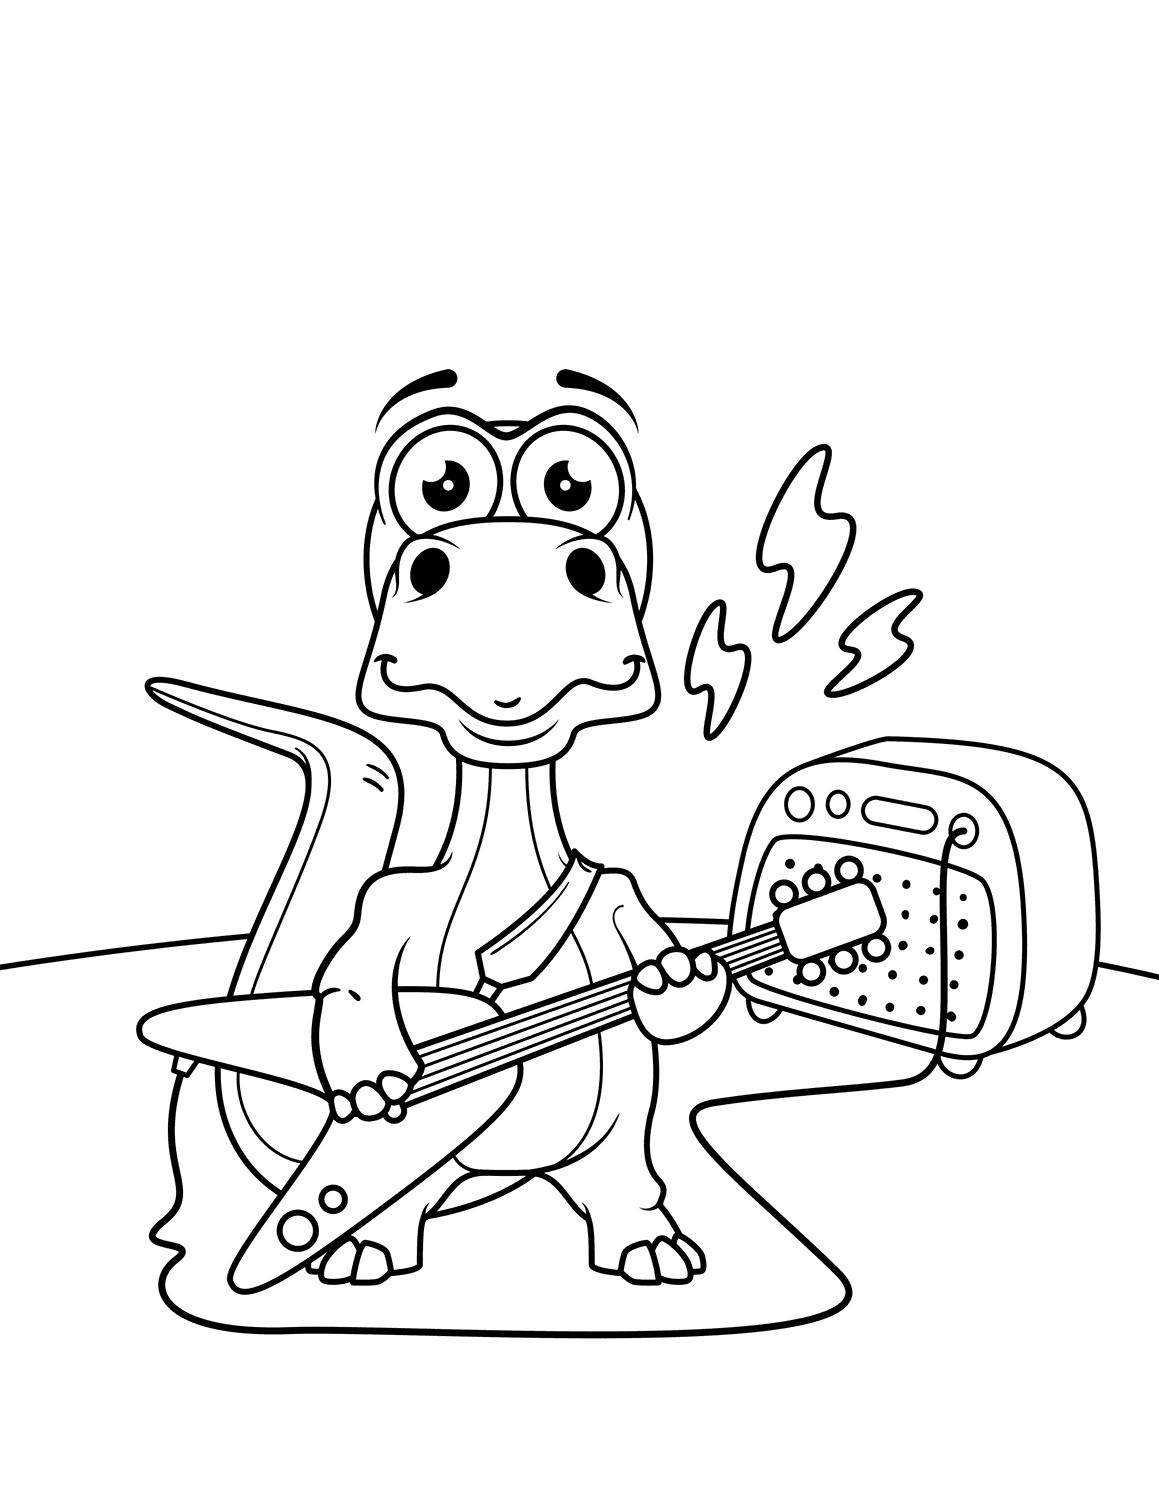 Dinosaur playing guitar Coloring Pages - Dinosaurs ...